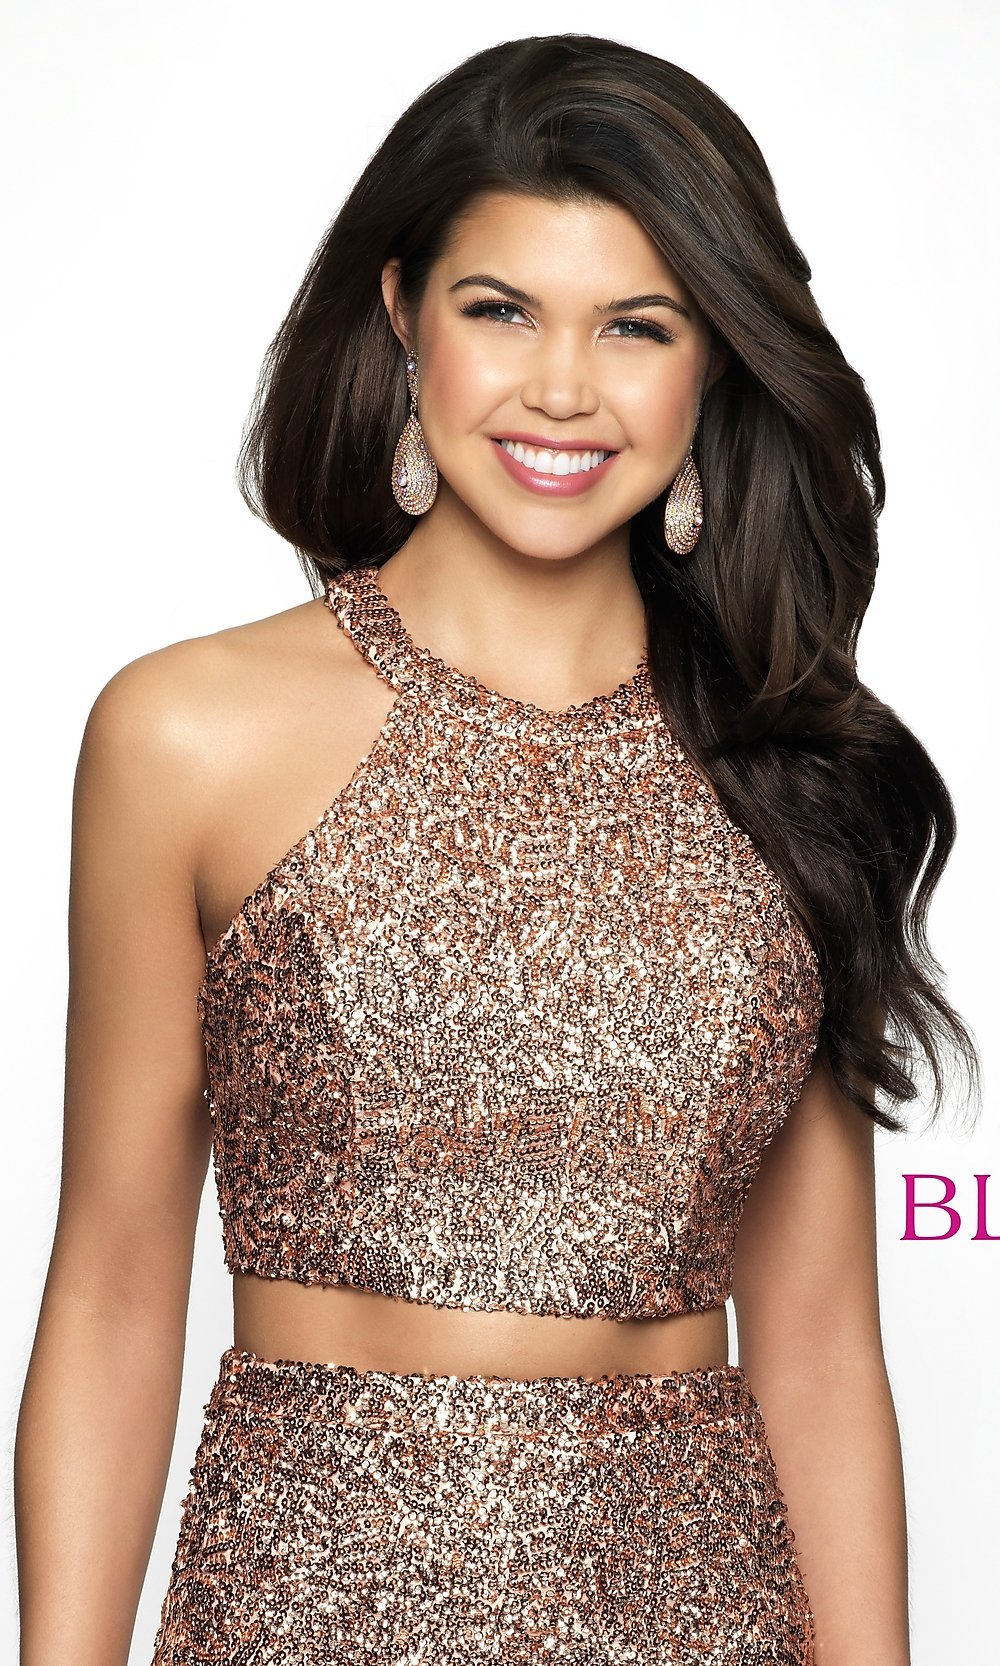 94b2e5a4 Image of rose gold racerback sequin homecoming dress by blush. Style:  BL-B112. Tap to expand